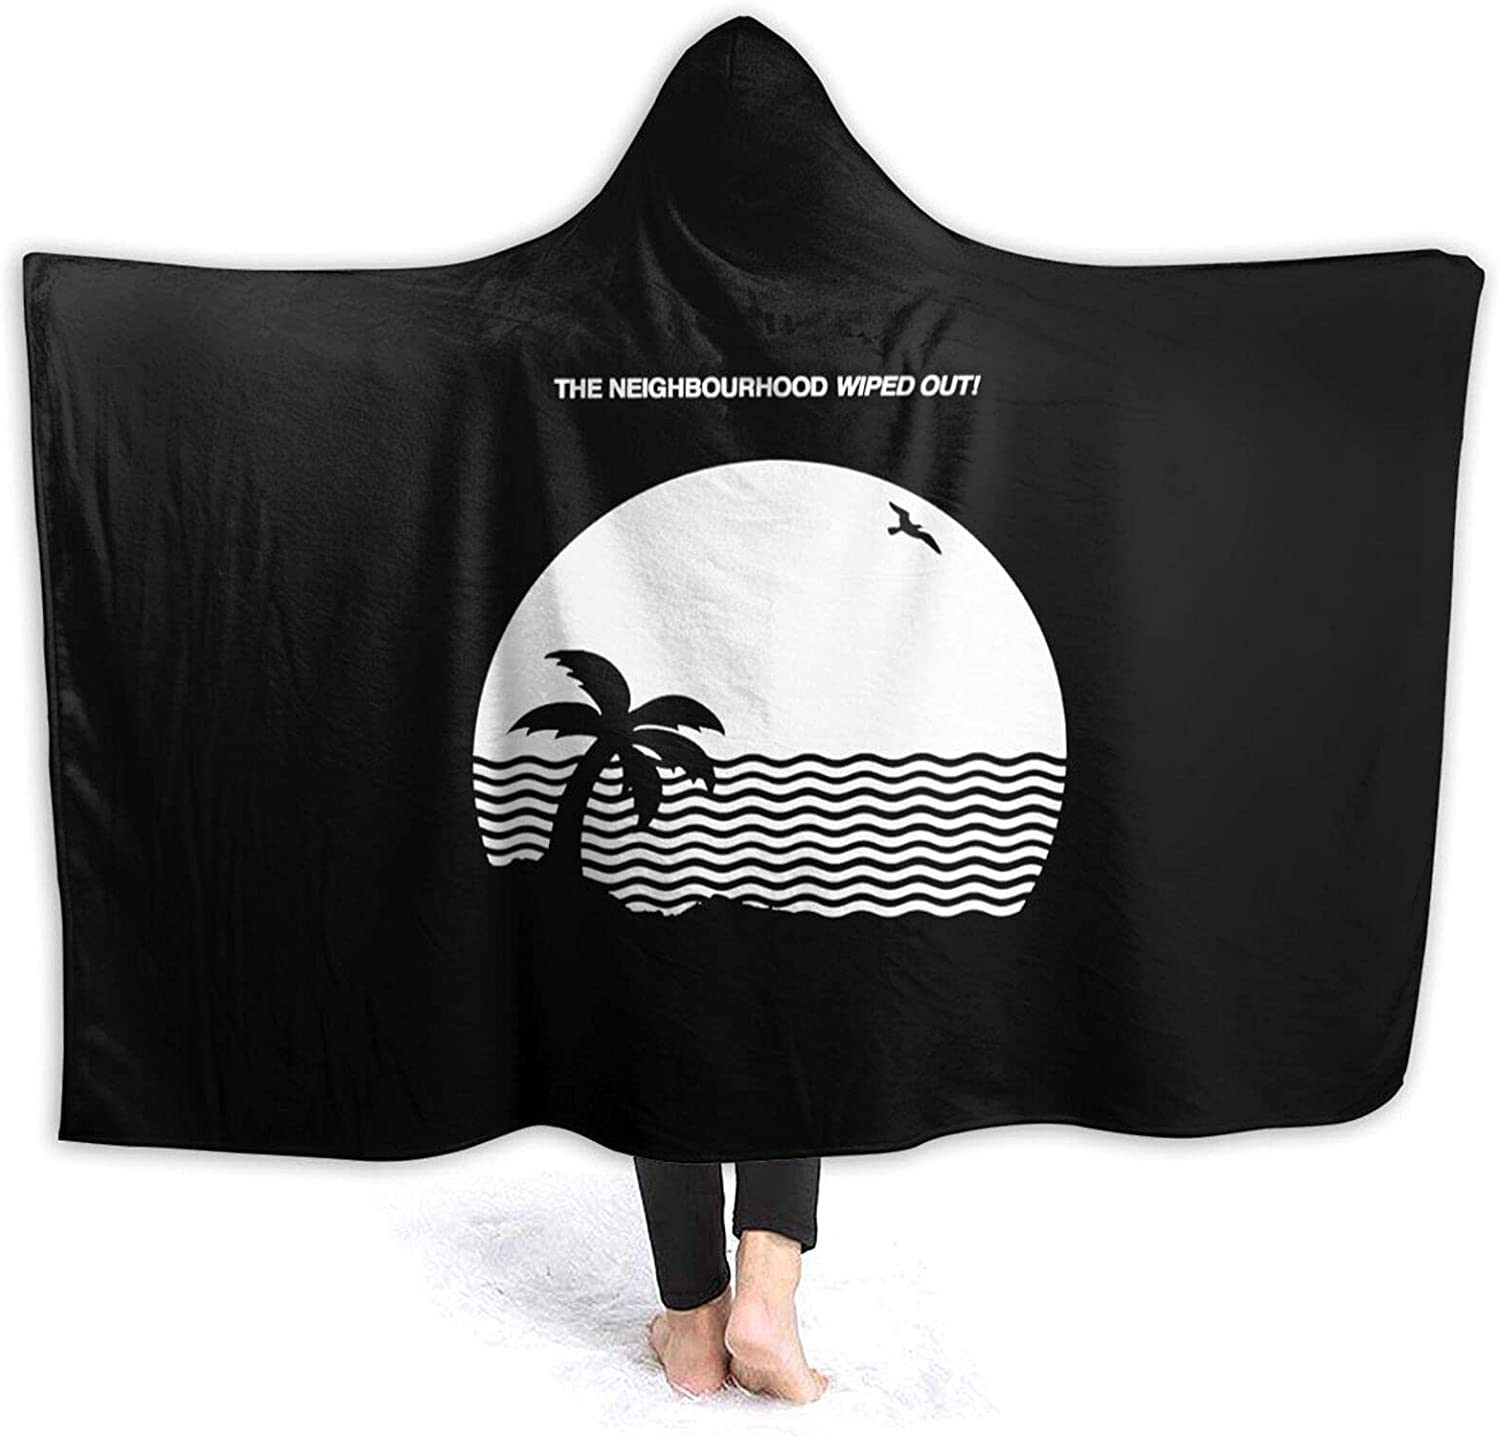 Hooded Blanket Poncho San Jose Mall The Now on sale Neighbourhood Wiped I Out and You Love